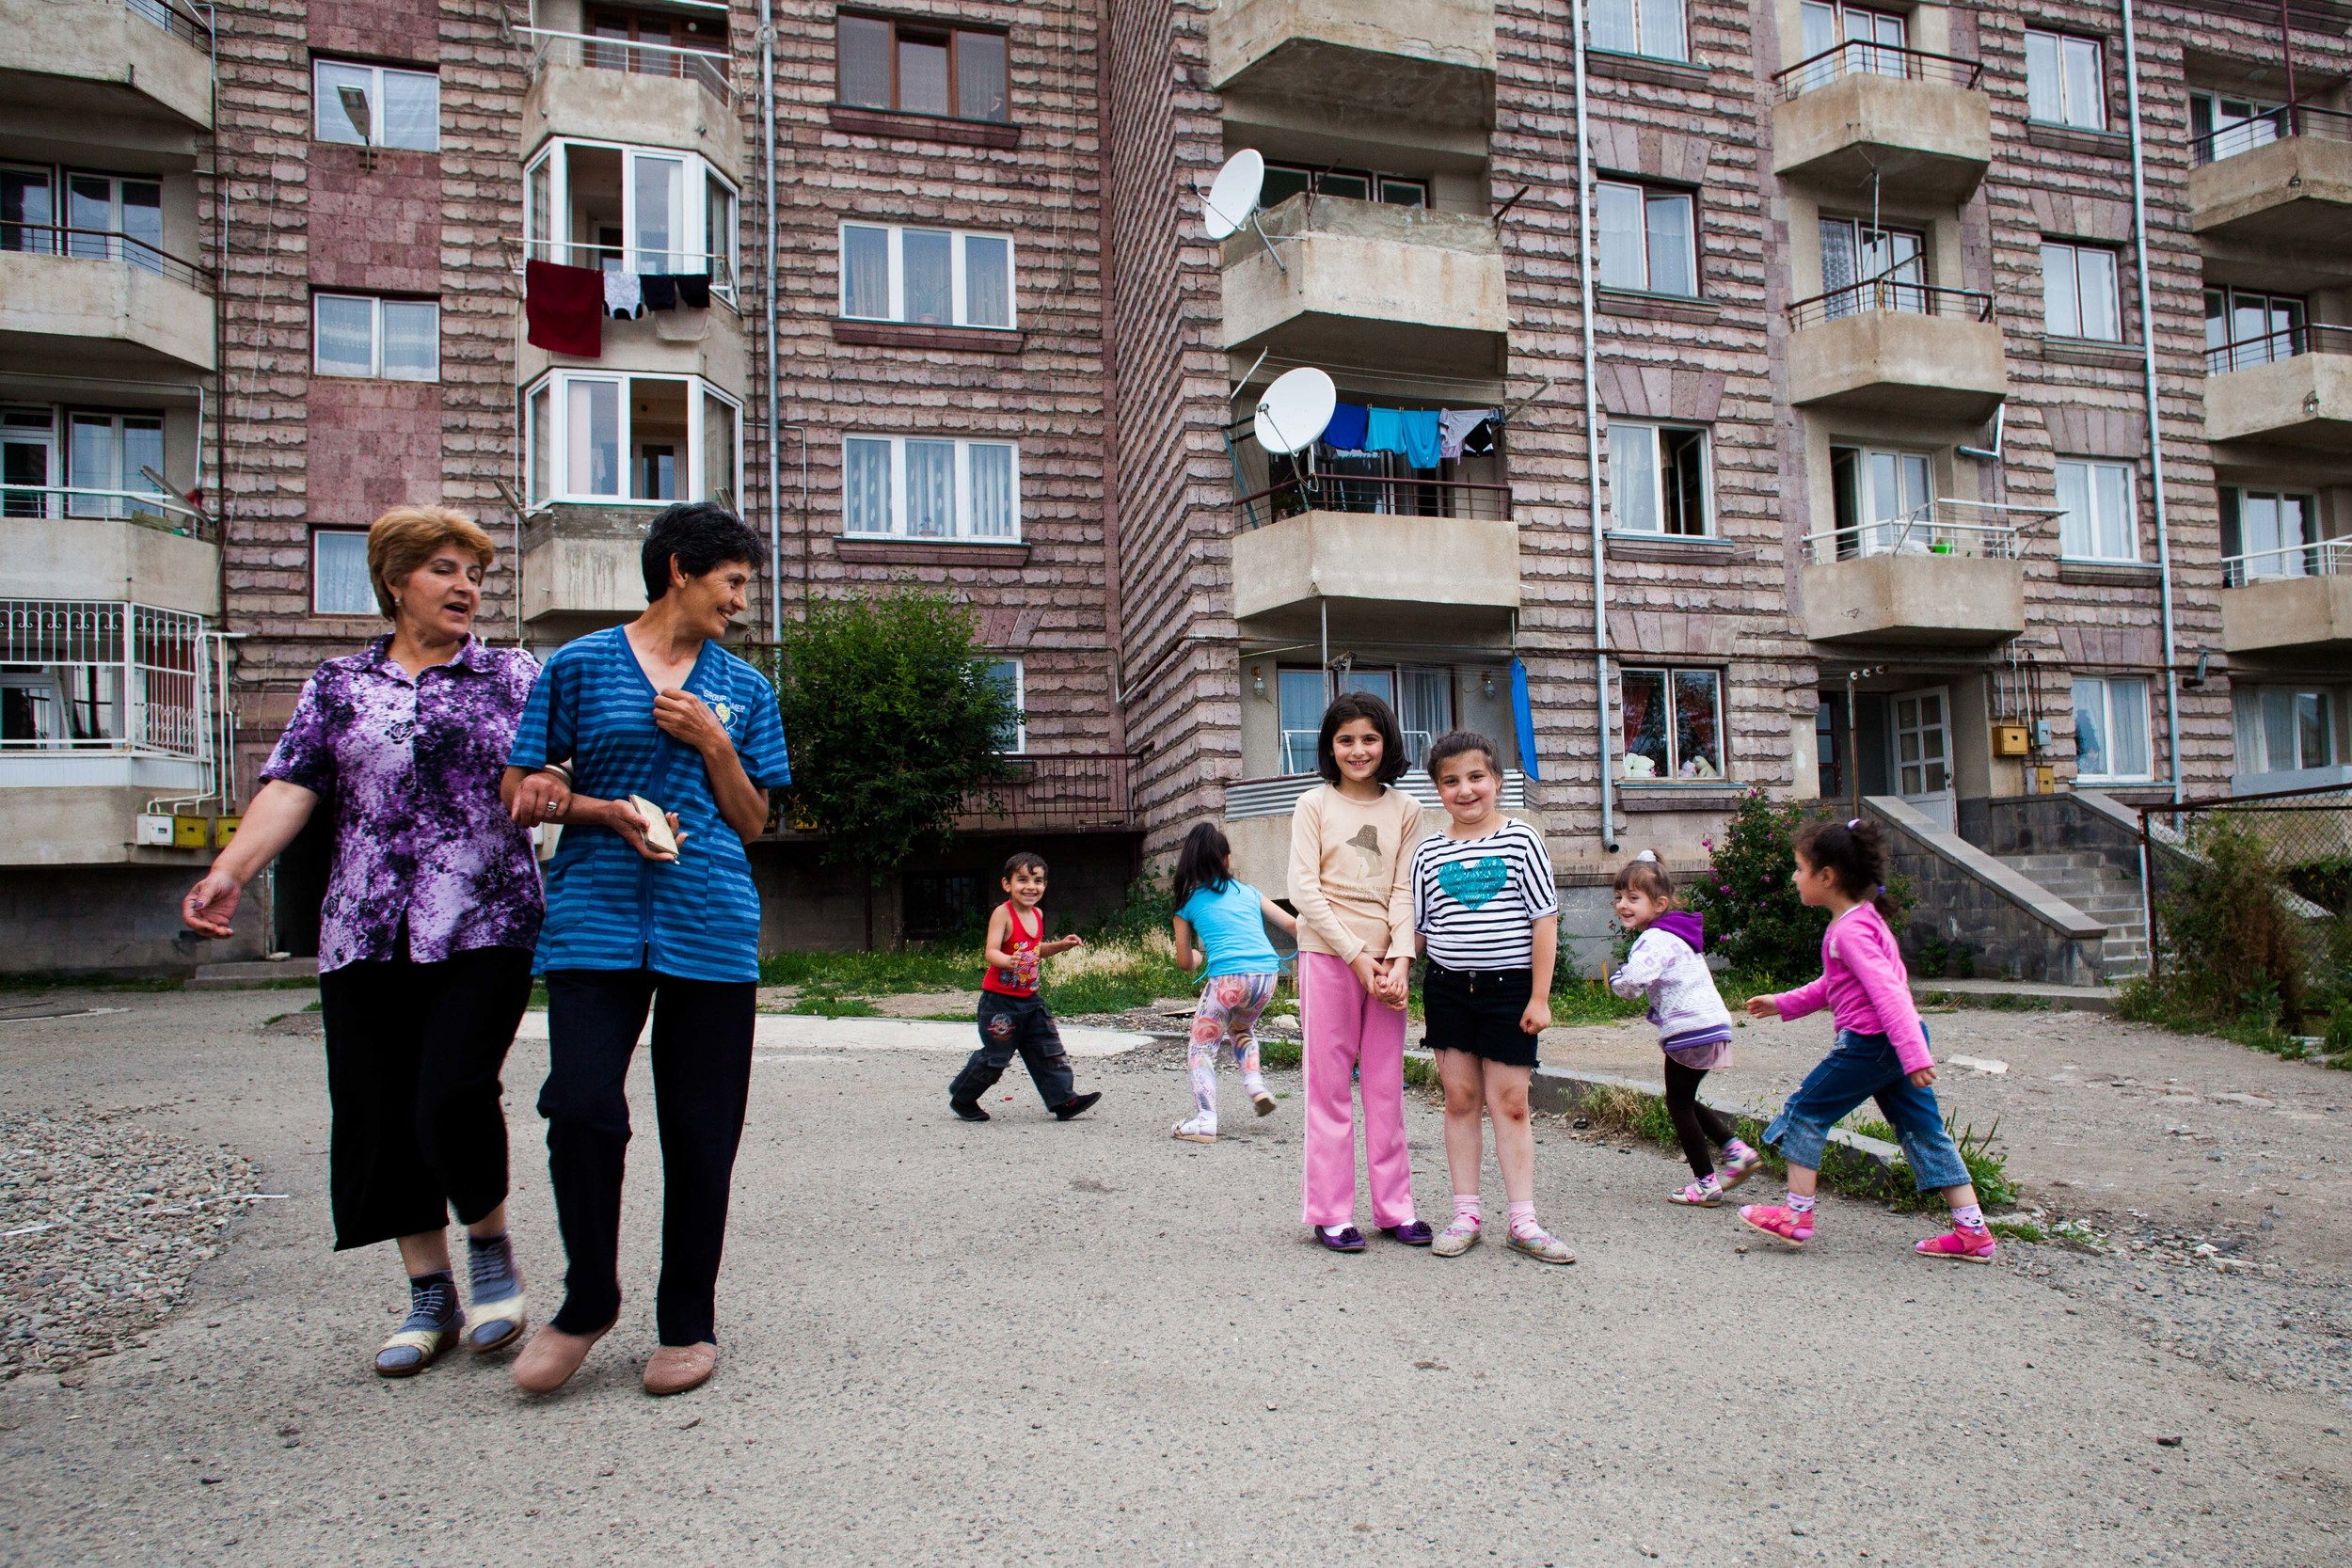 Local Spitak community members spend time outside on a summer day.